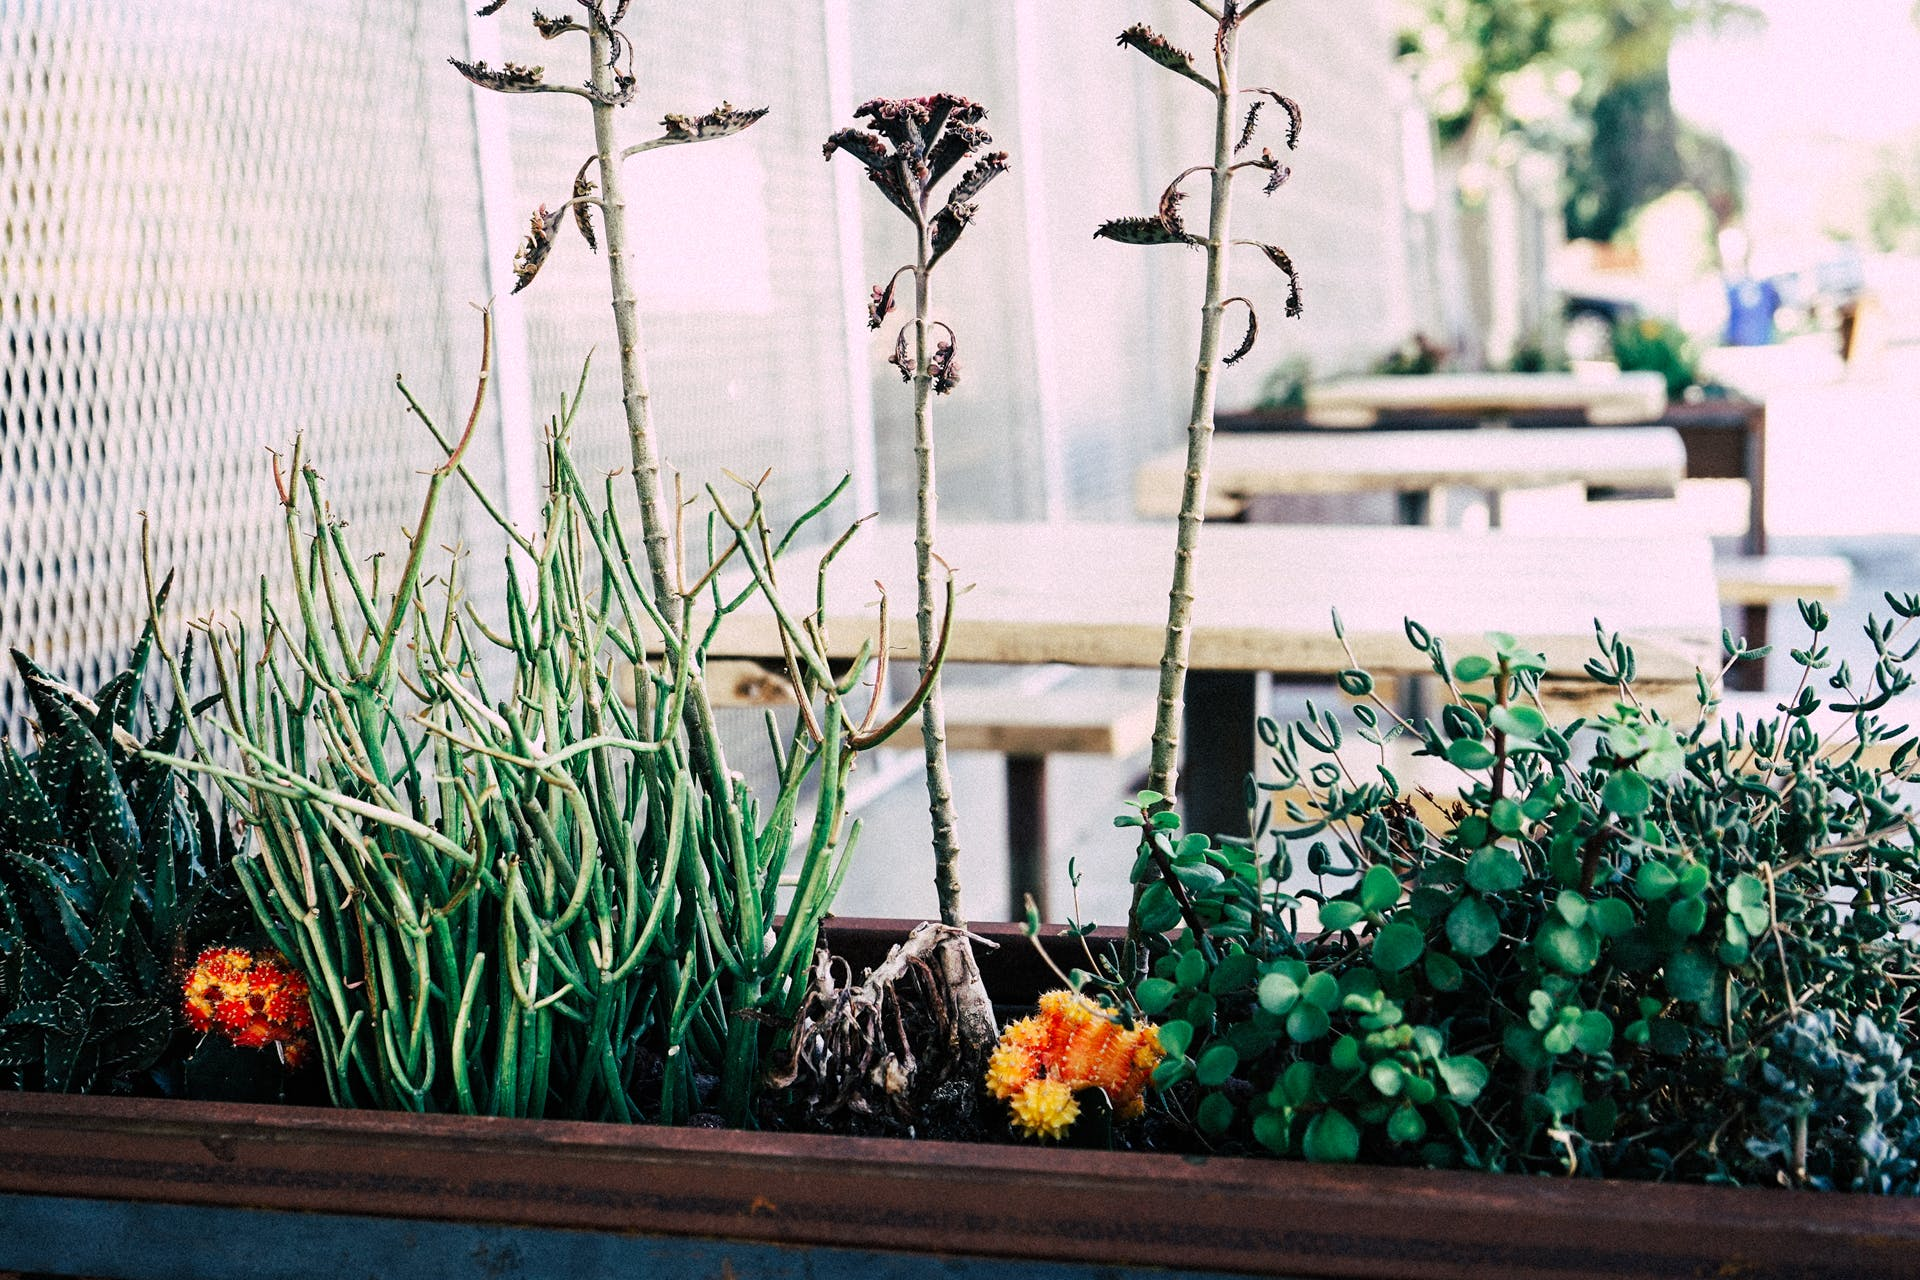 Free stock photo of flowers, flowerpot, plants, tables